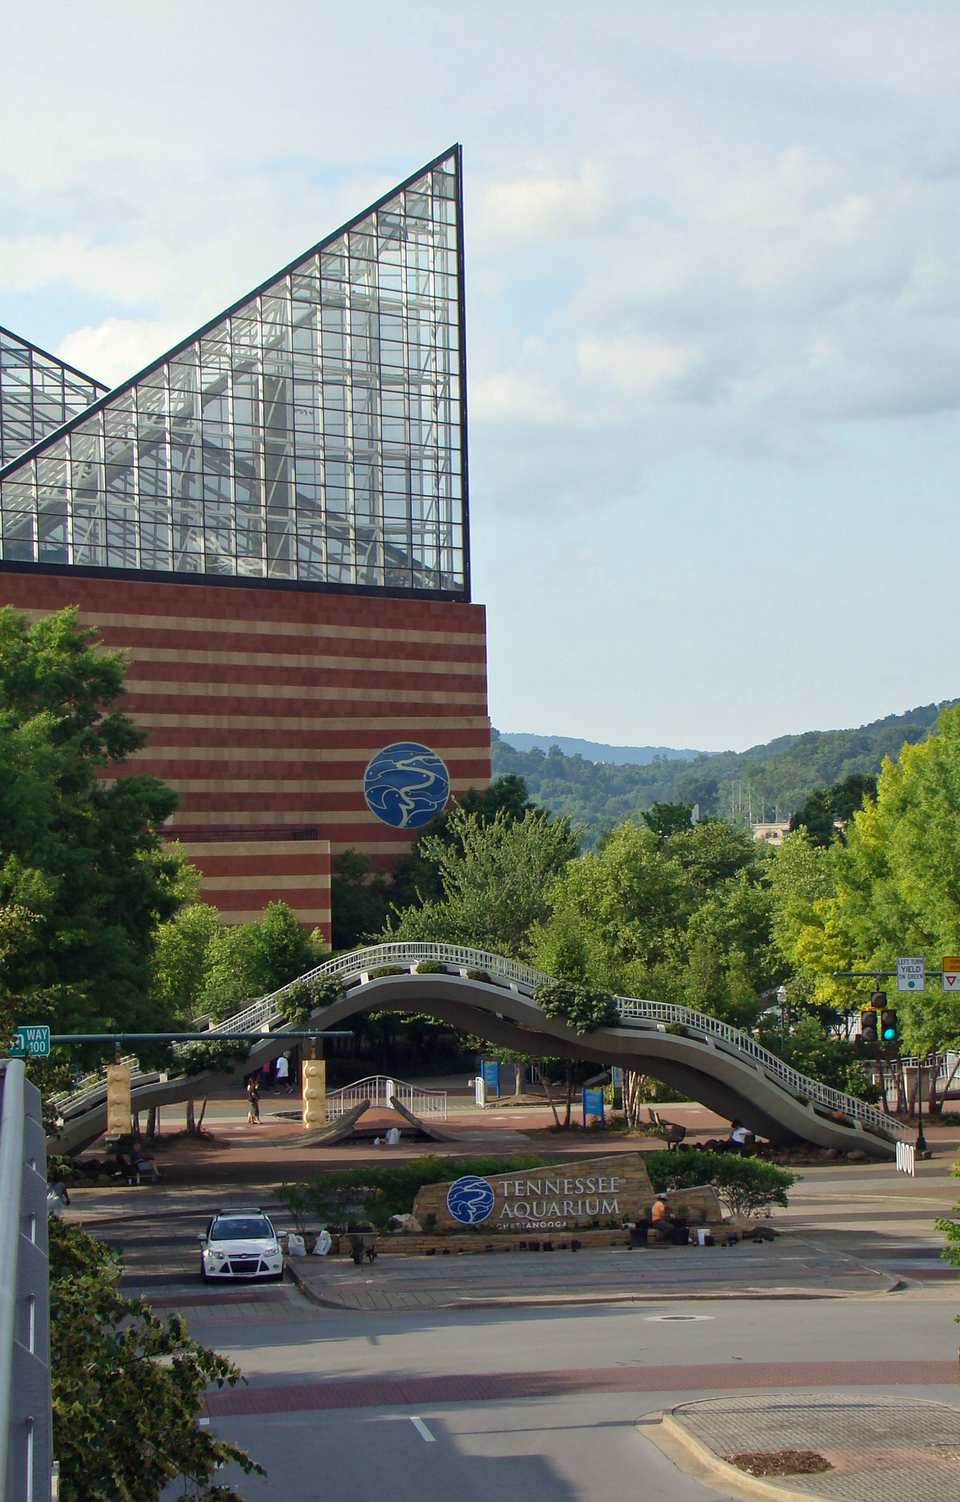 The Tennessee Aquarium is one of Chattanooga's top tourist attractions.